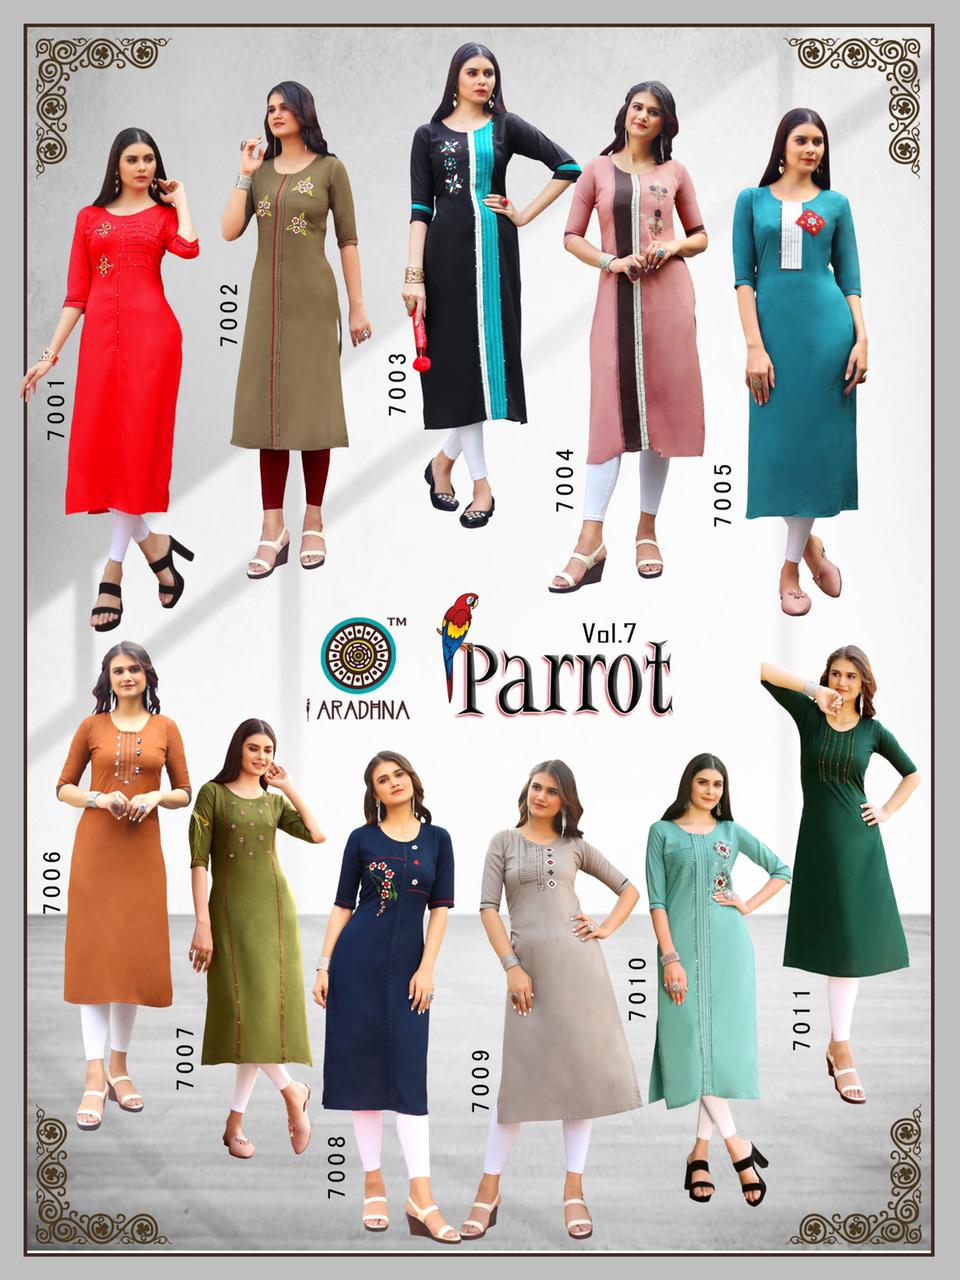 Aradhna Parrot Vol 7 Kurti Wholesale Catalog 11 Pcs 20 - Aradhna Parrot Vol 7 Kurti Wholesale Catalog 11 Pcs